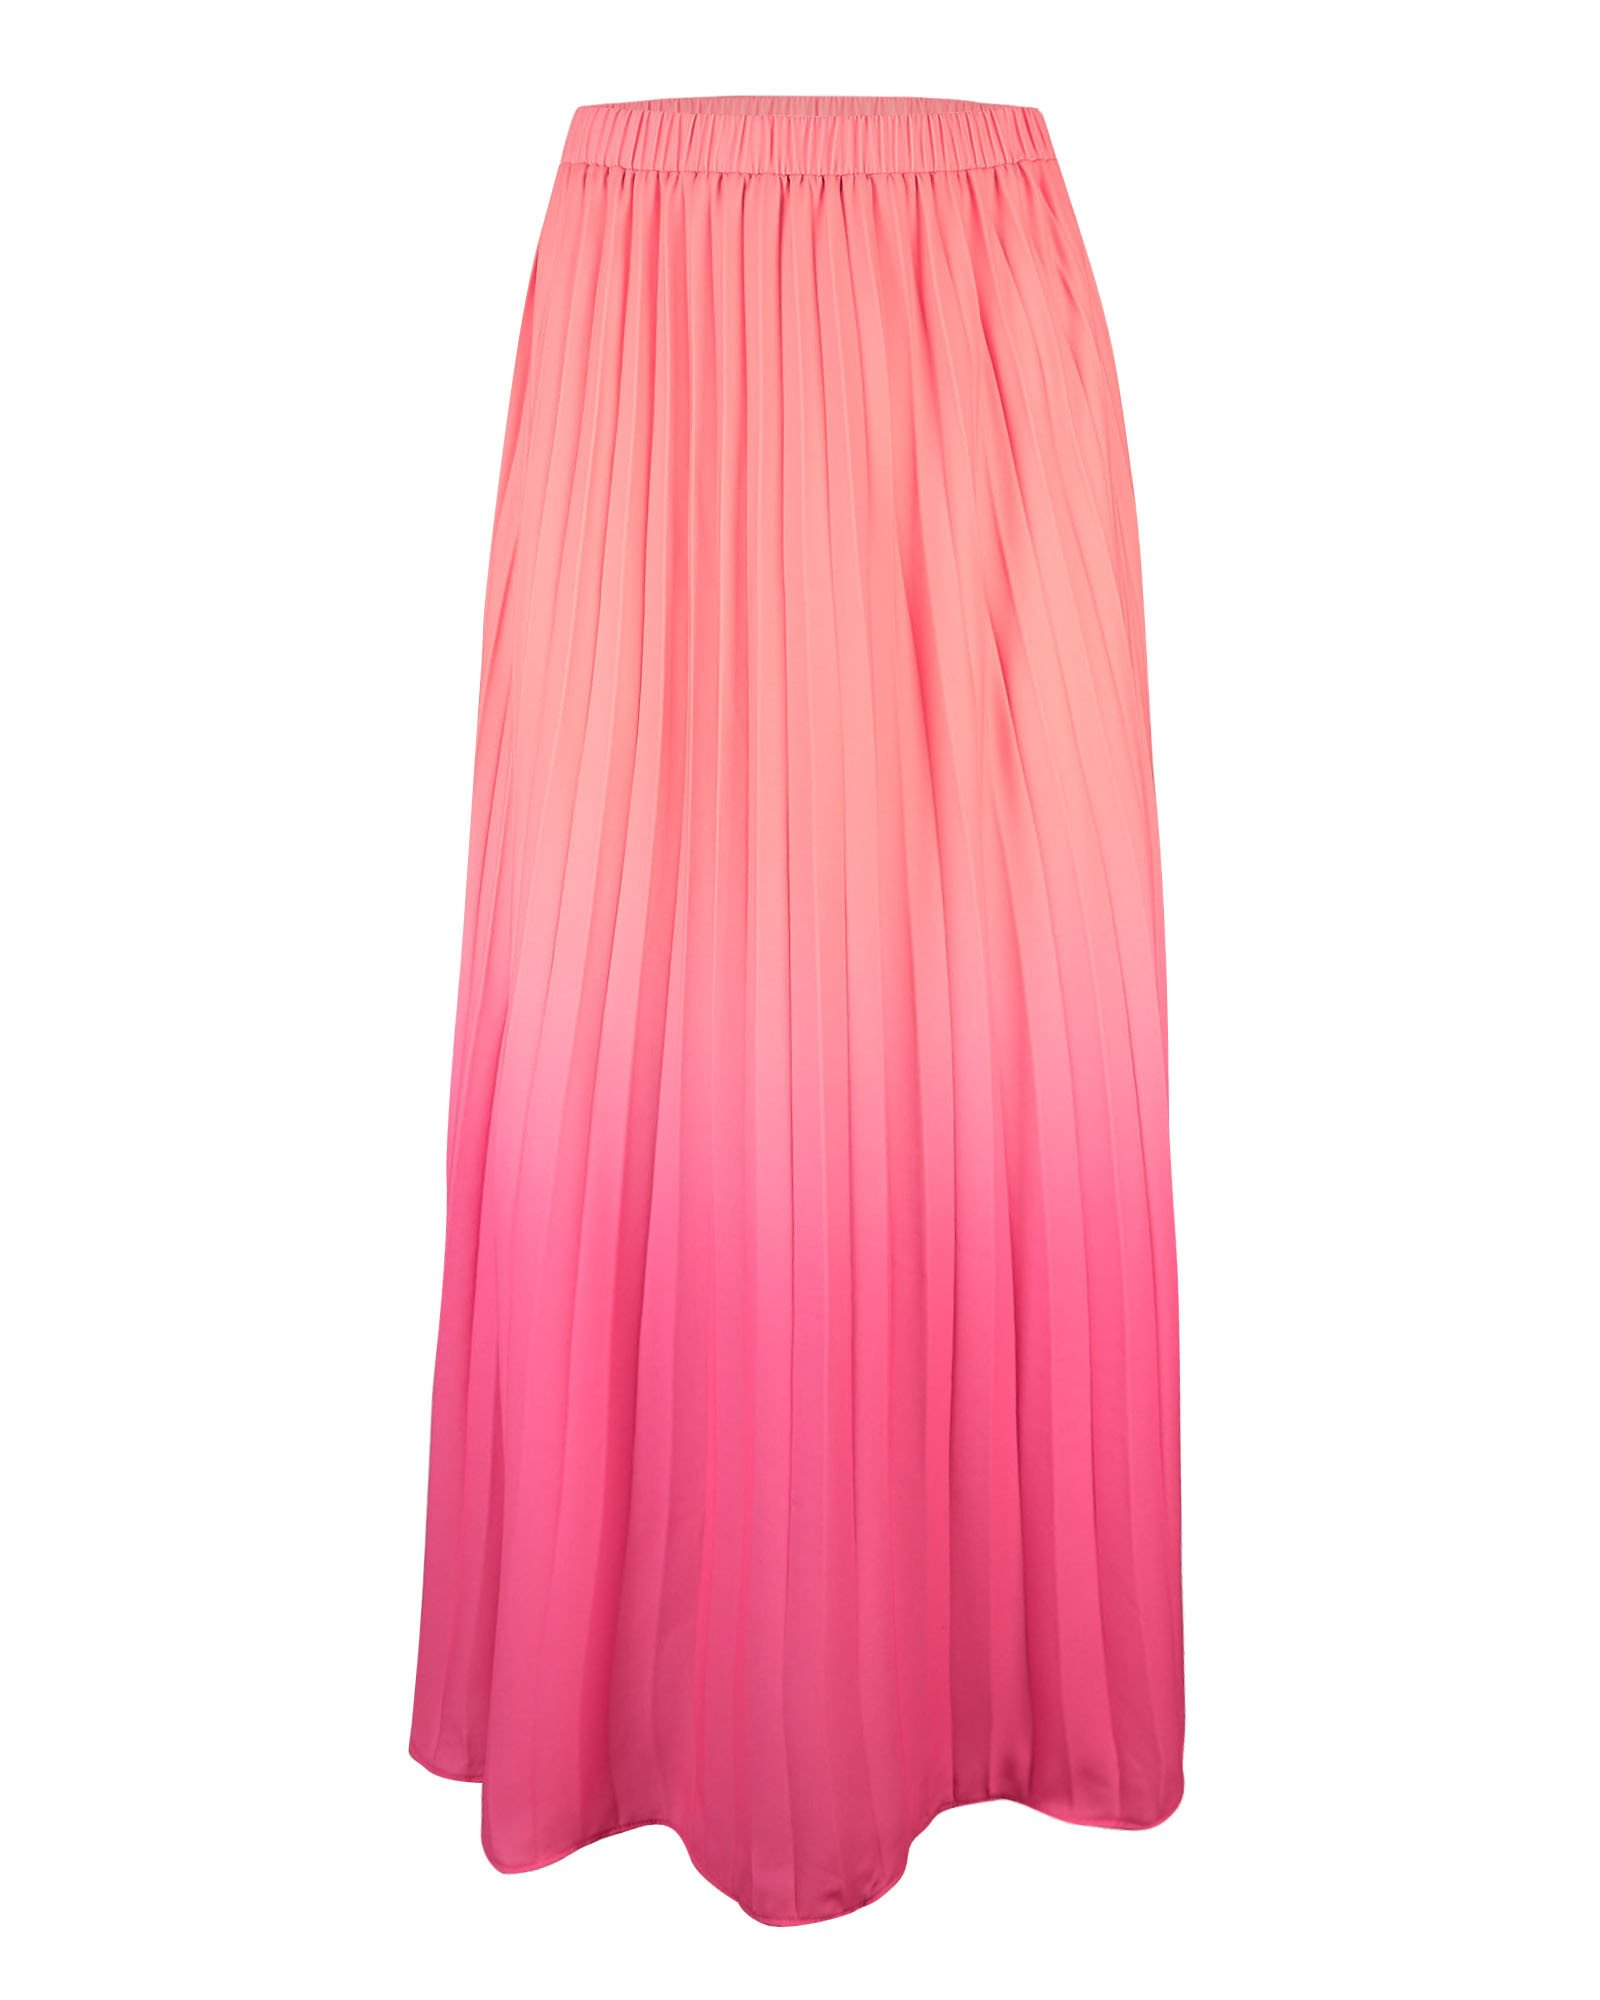 Ombre Pink Pleated Midi Skirt